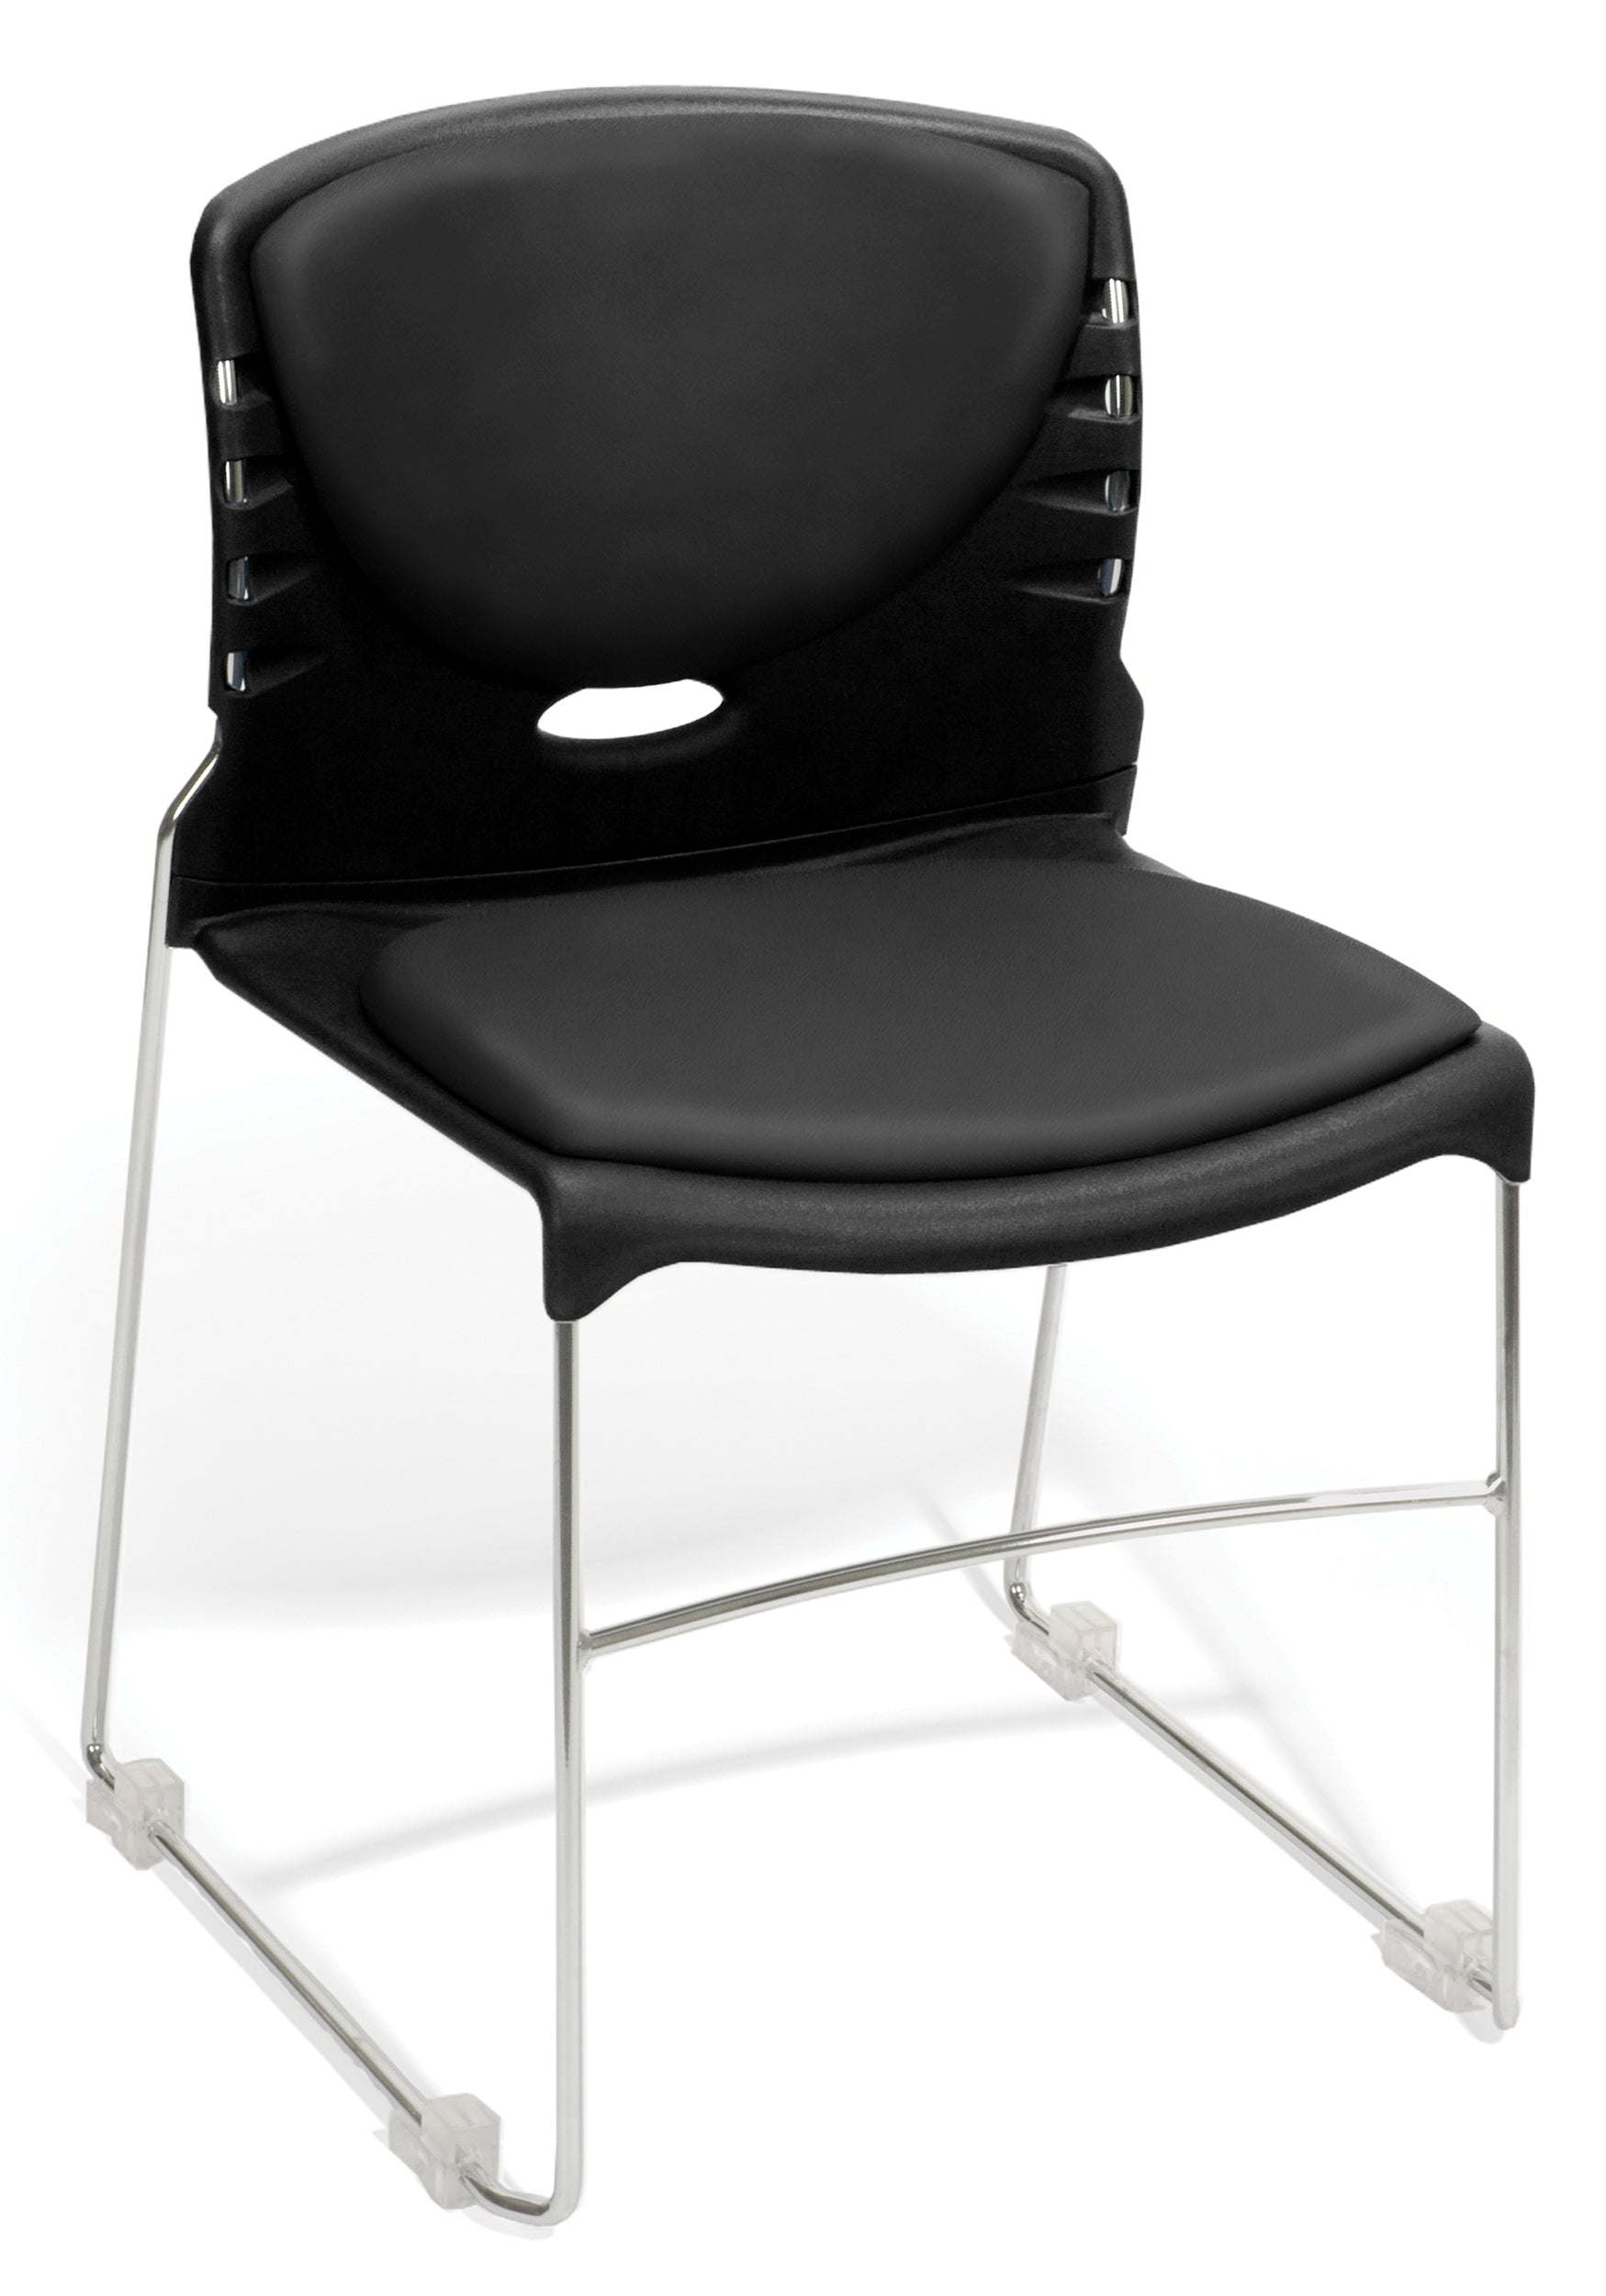 320-VAM Anti-Microbial / Anti-Bacterial Seat & Back Vinyl Stack Chair